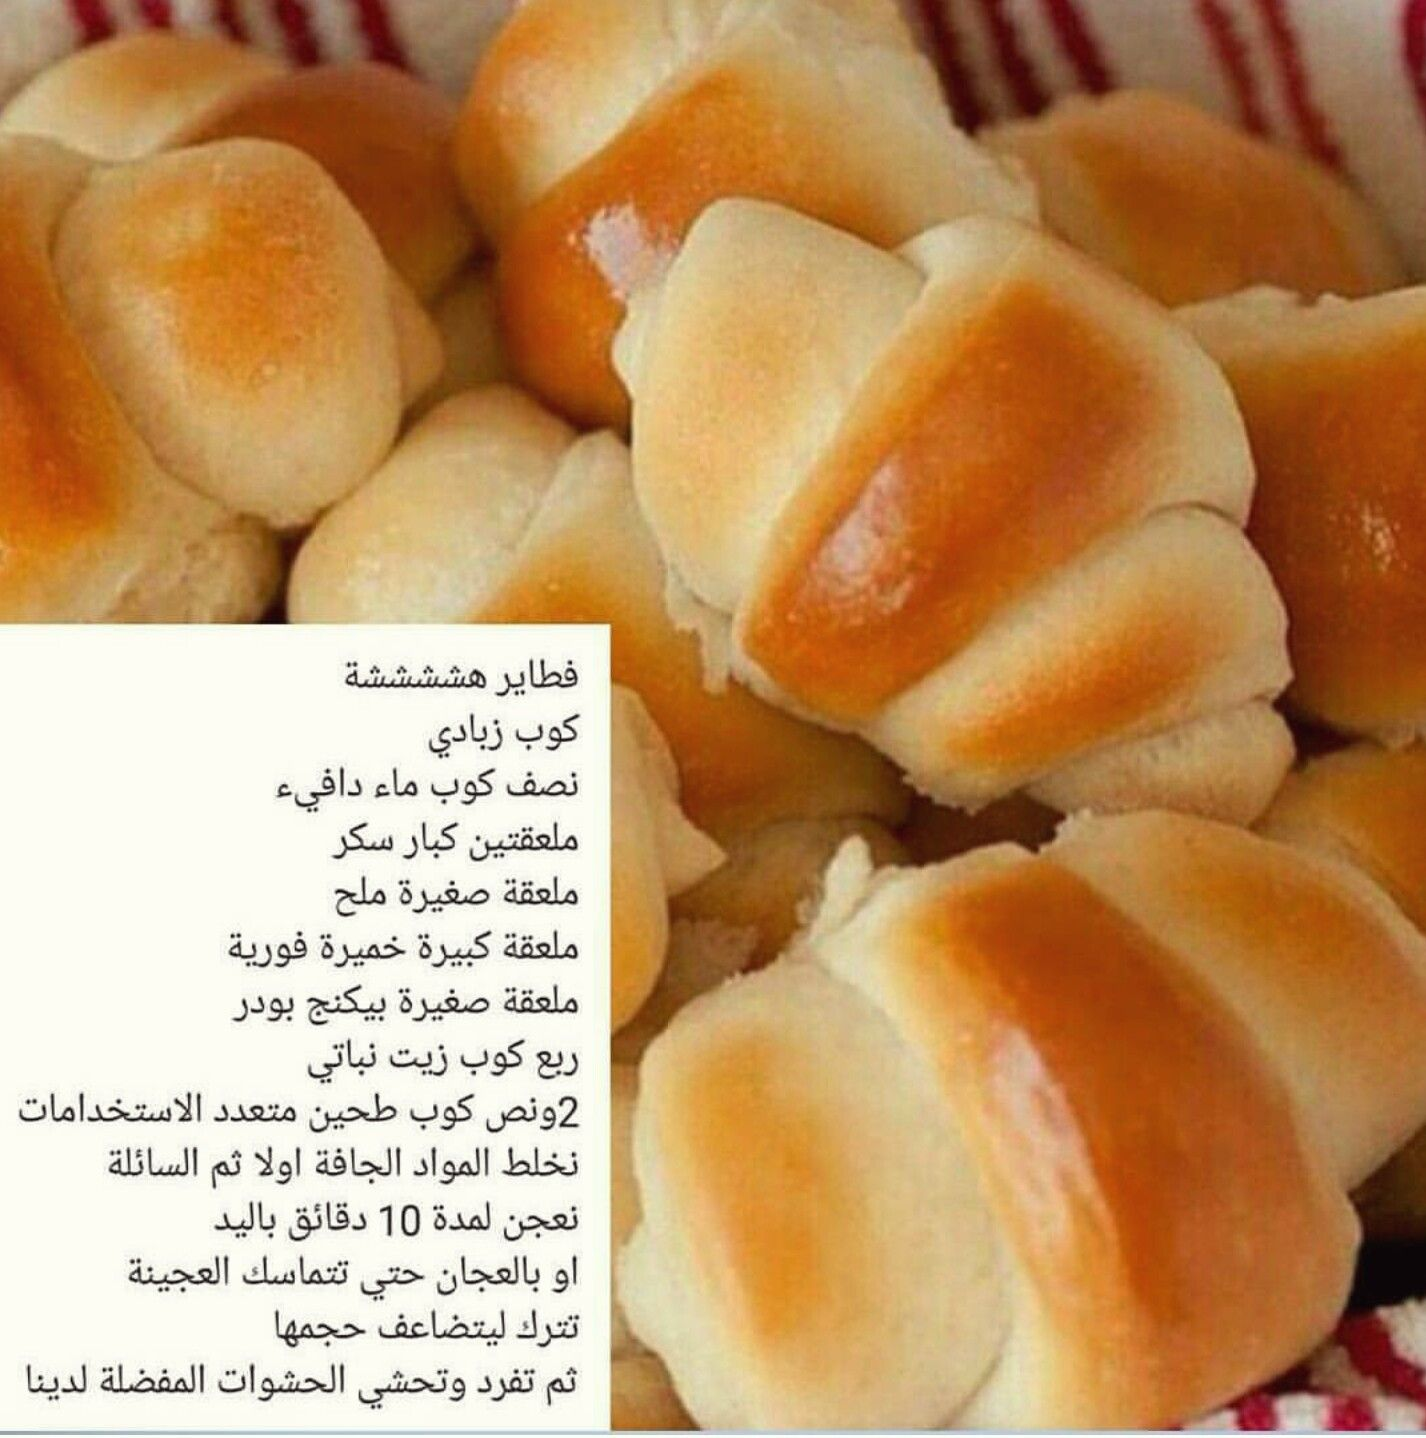 Pin By Nada Mohamed On أطايب Cooking Recipes Desserts Food Recipies Food Receipes